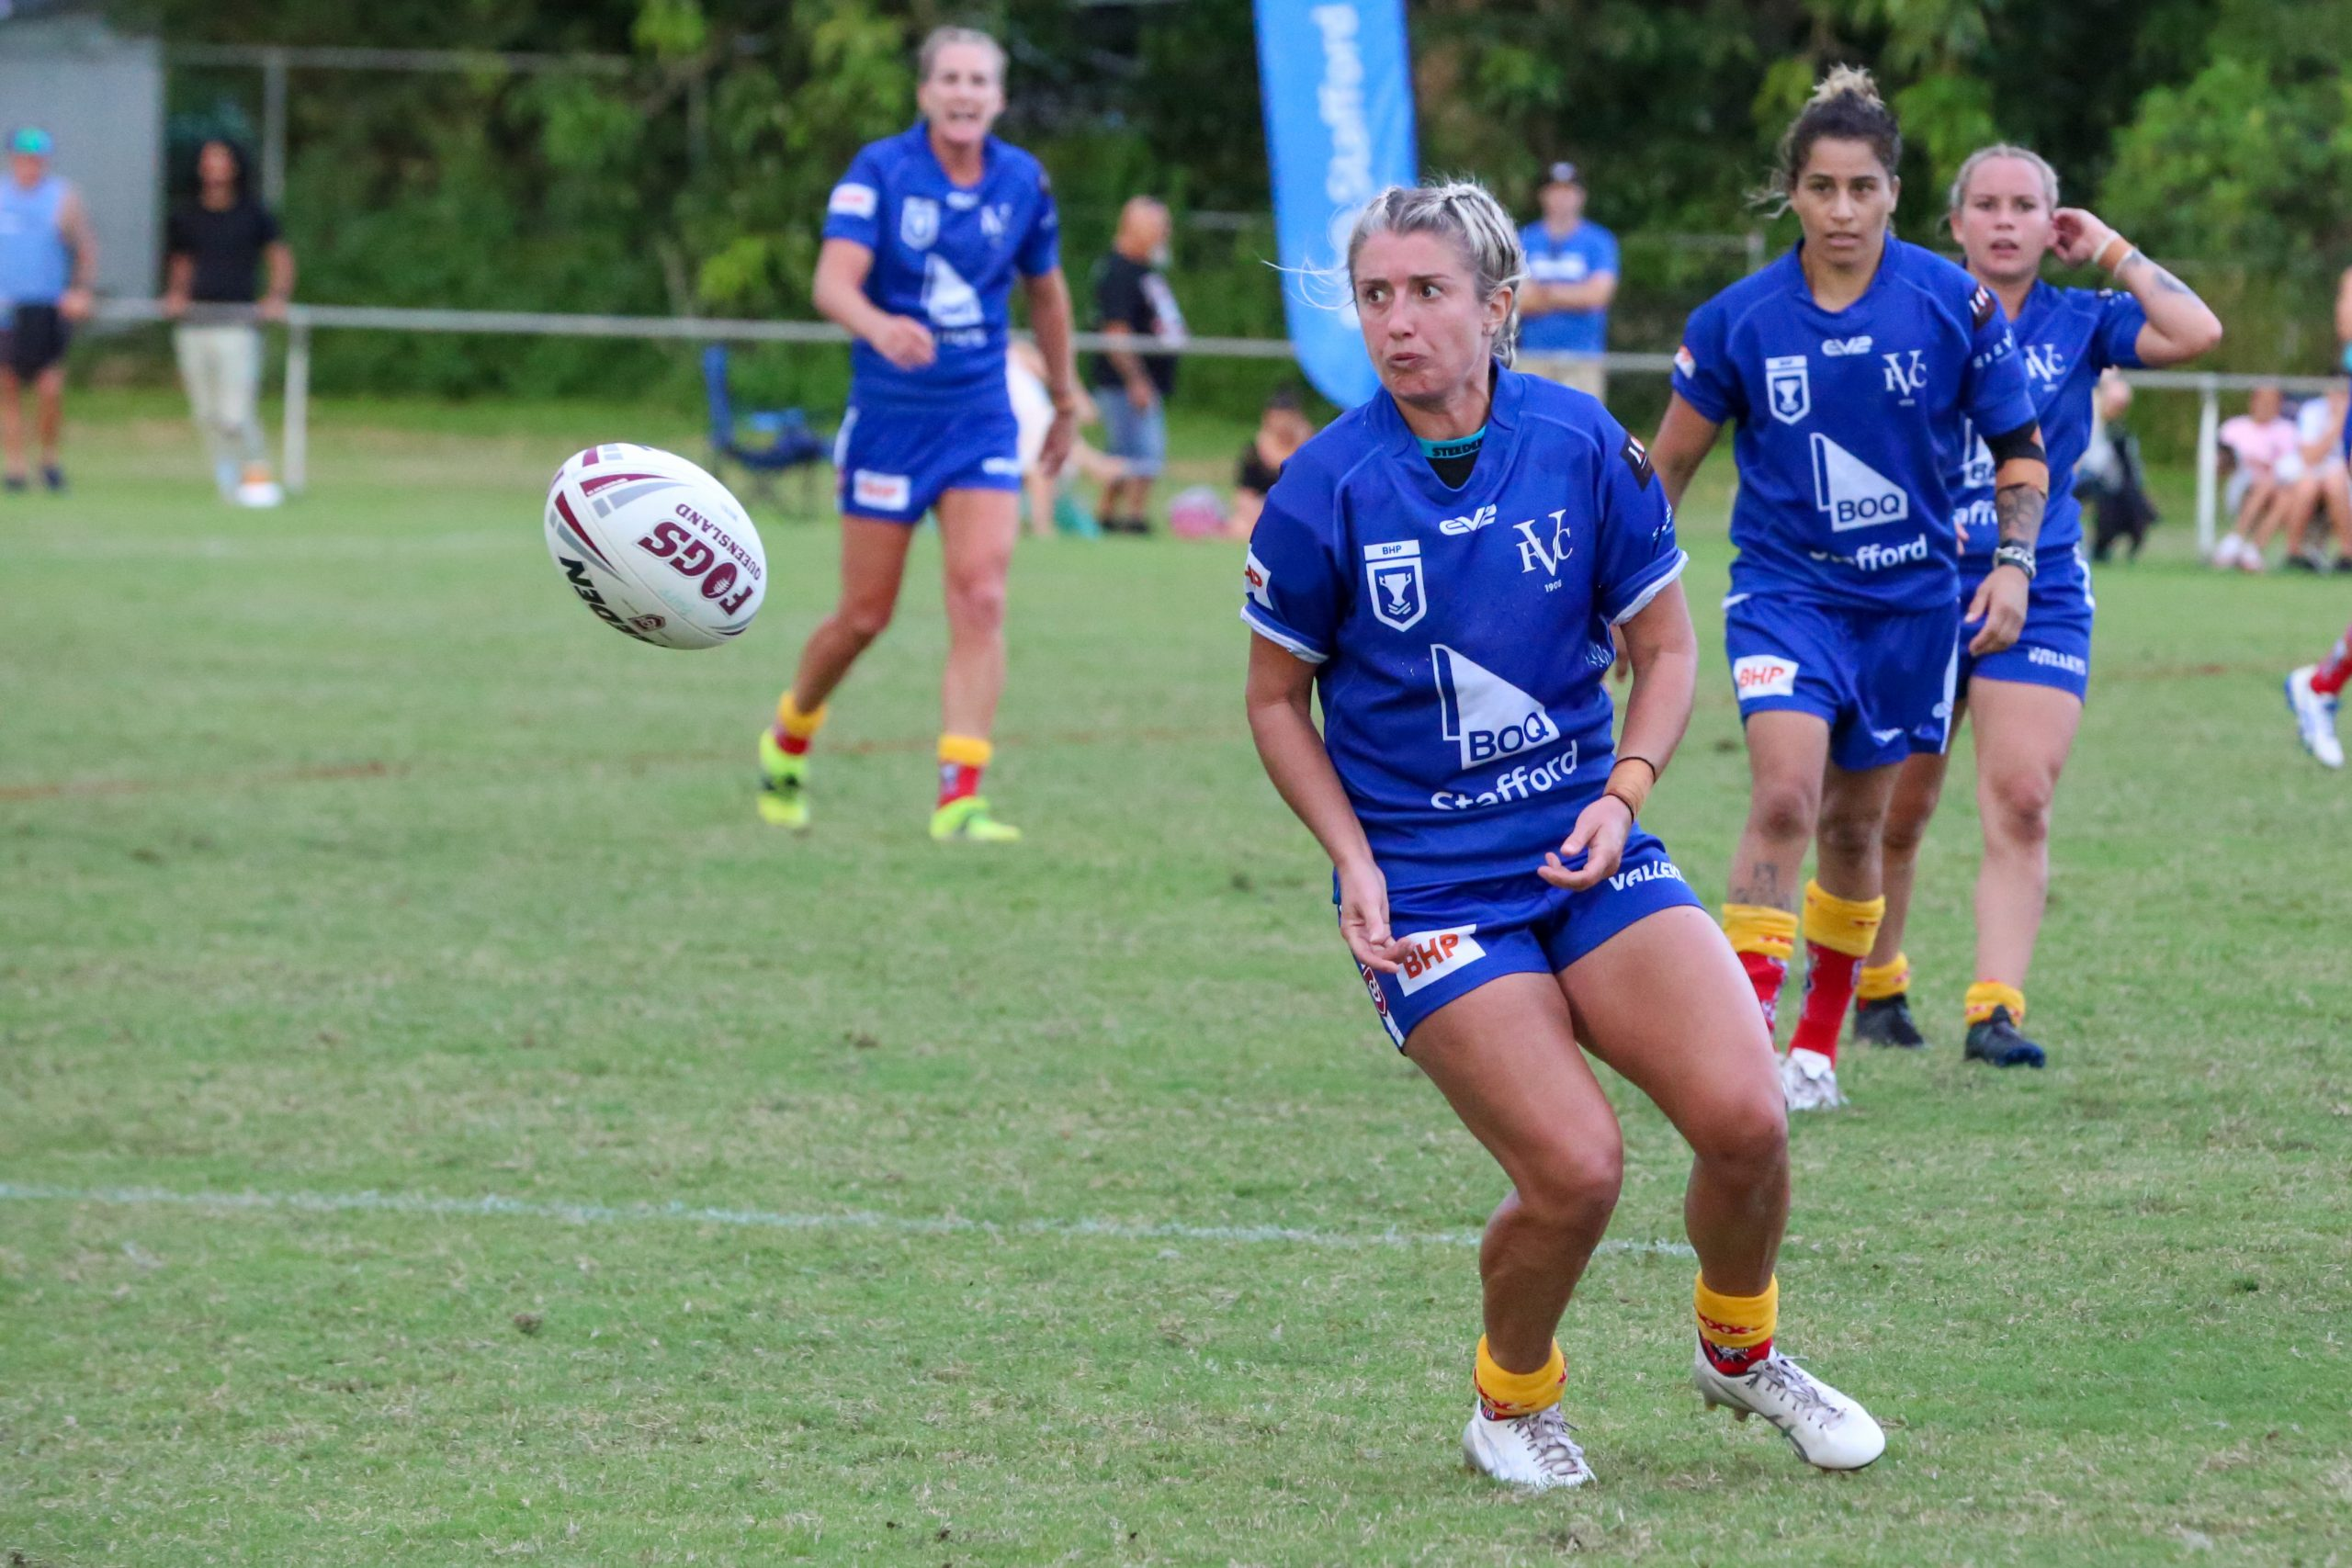 Valleys and Burleigh remain undefeated in BHP Premiership